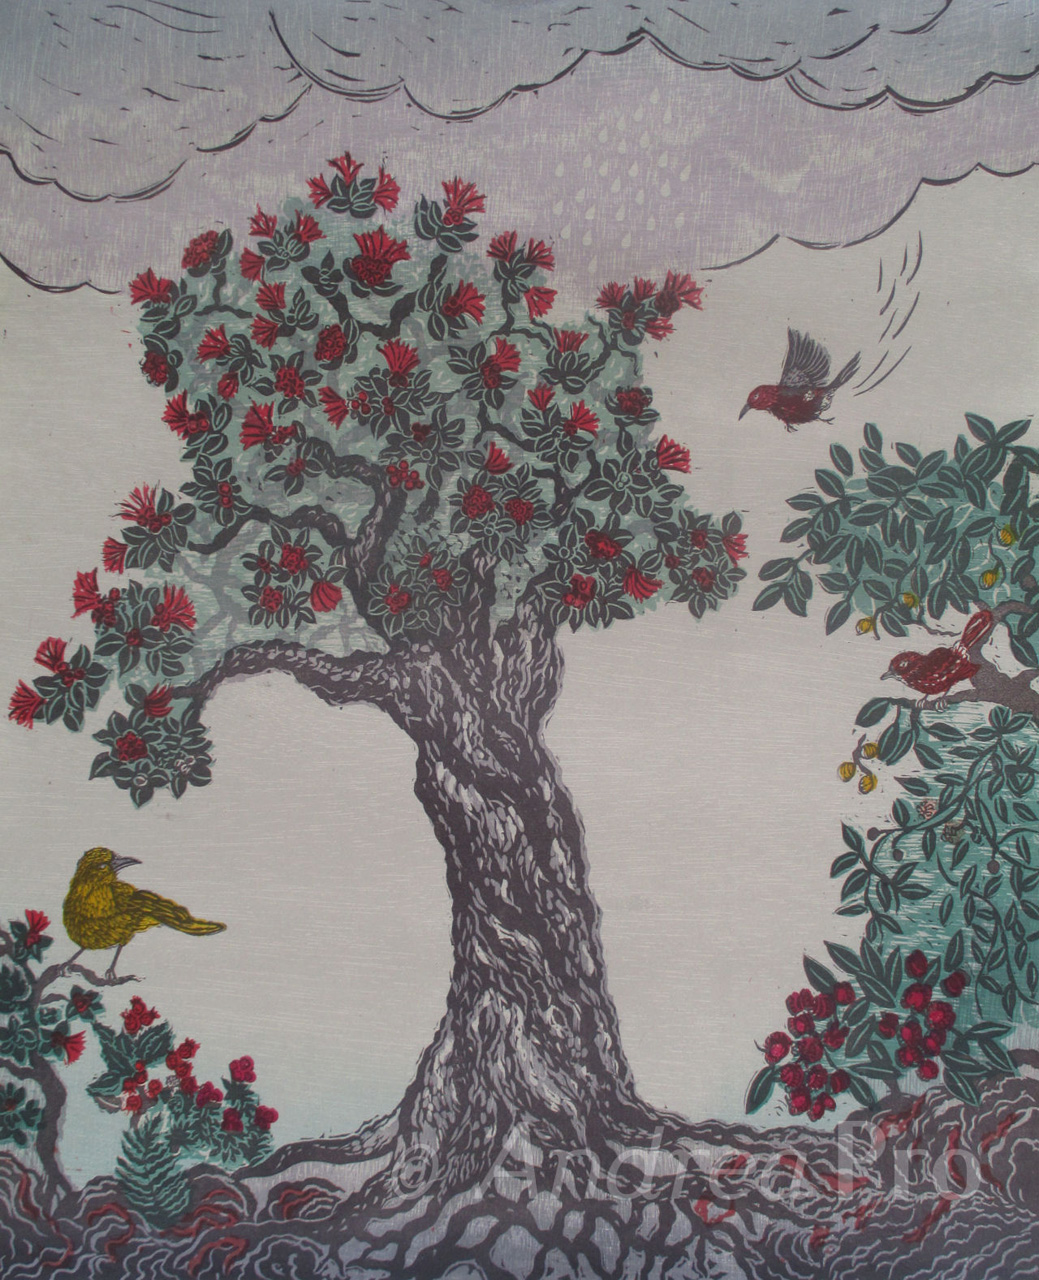 Laka Gathers the Forest by Andrea Pro print of tree with flowers and birds